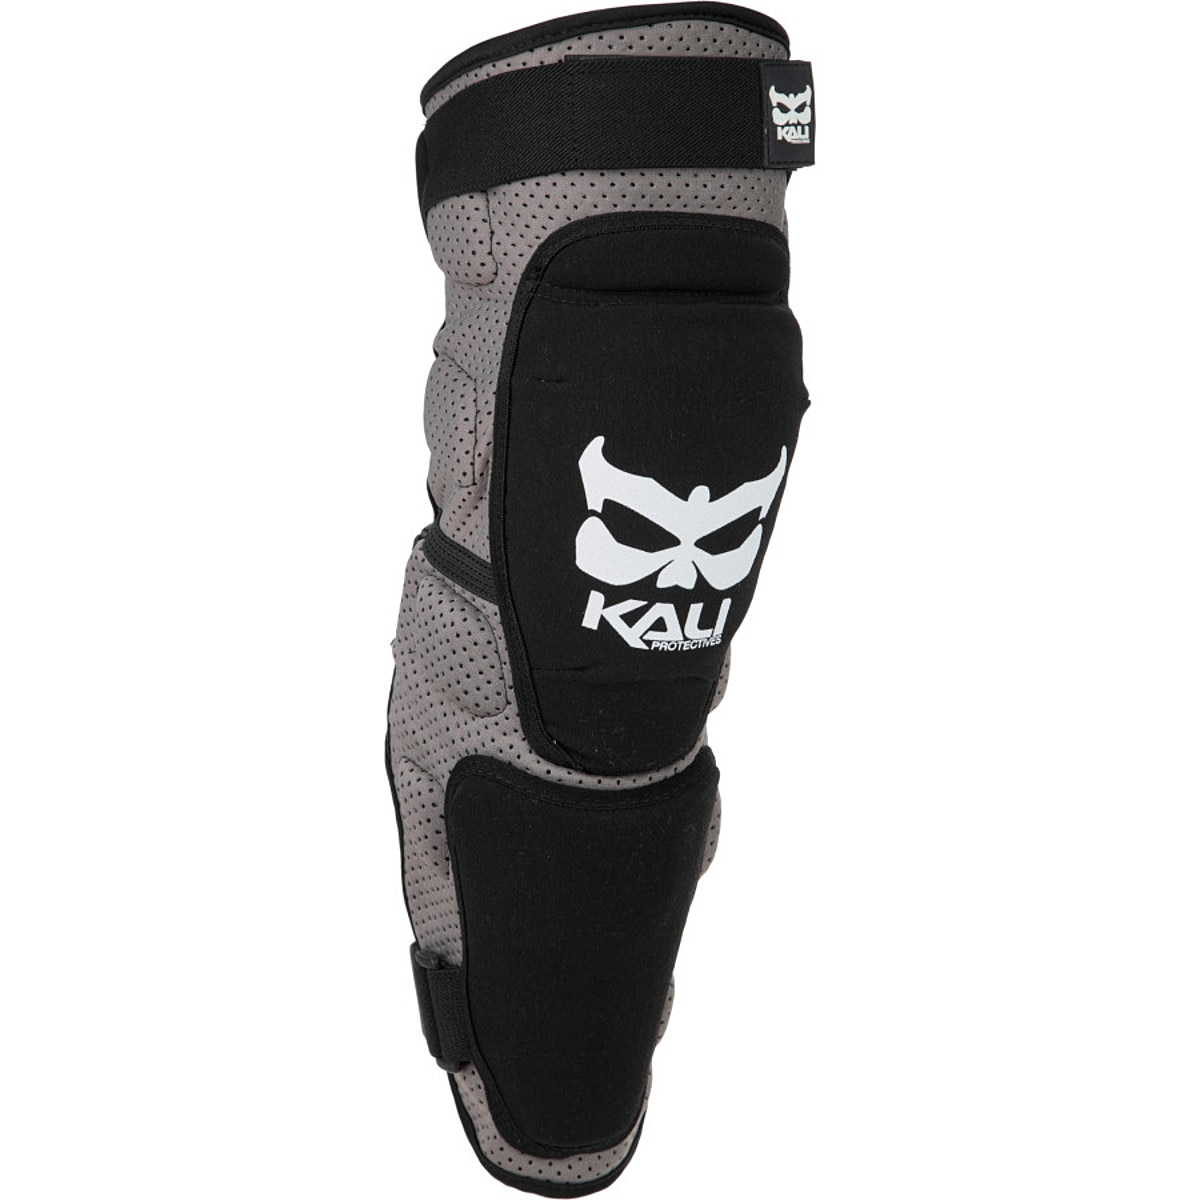 Kali Protectives Aazis Plus 130 Soft Knee/Shin Guard